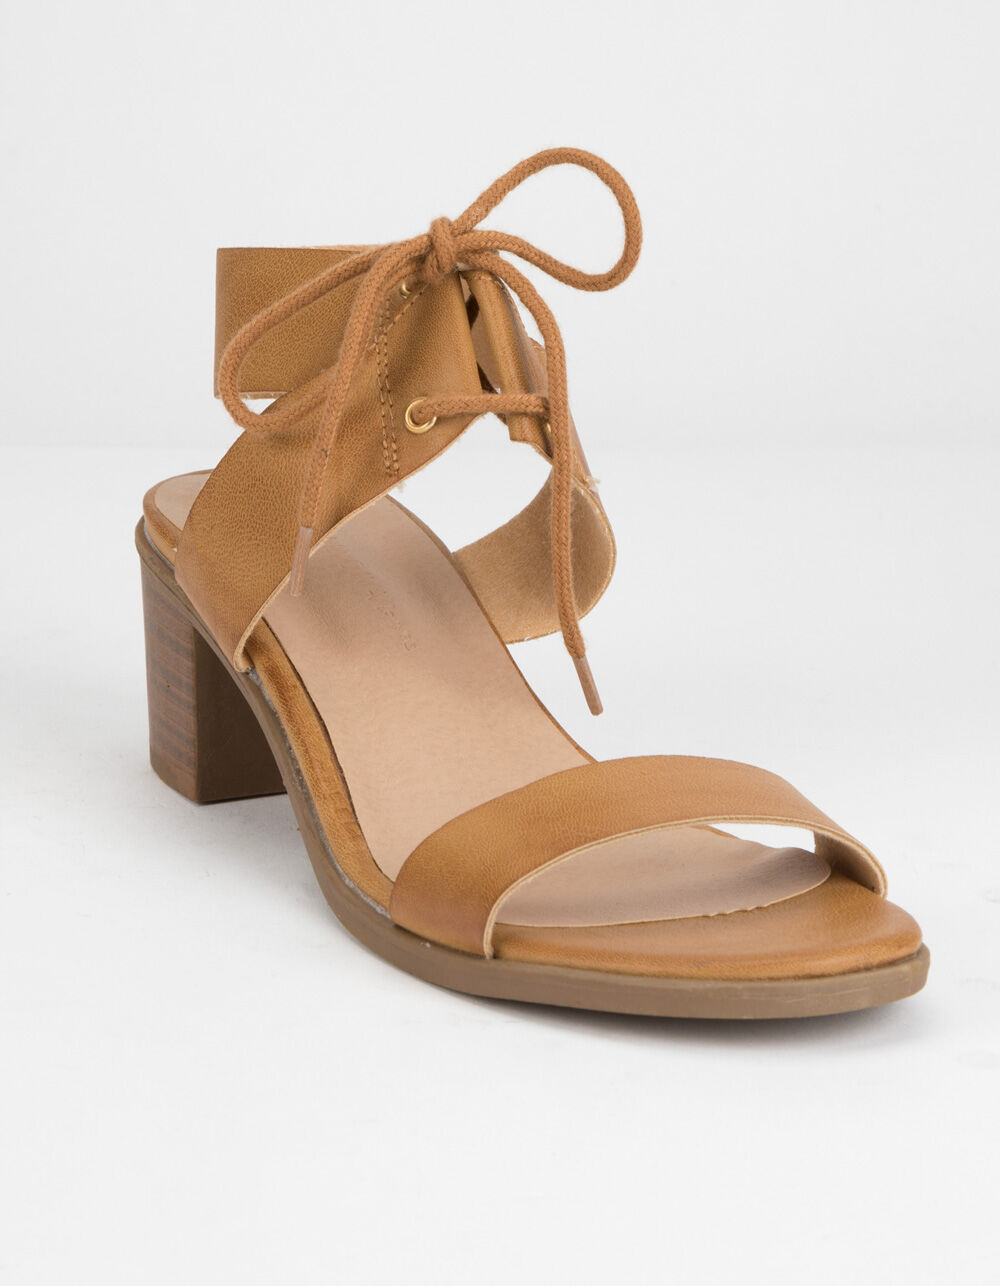 WILD DIVA Lace Up Block Tan Heeled Sandals